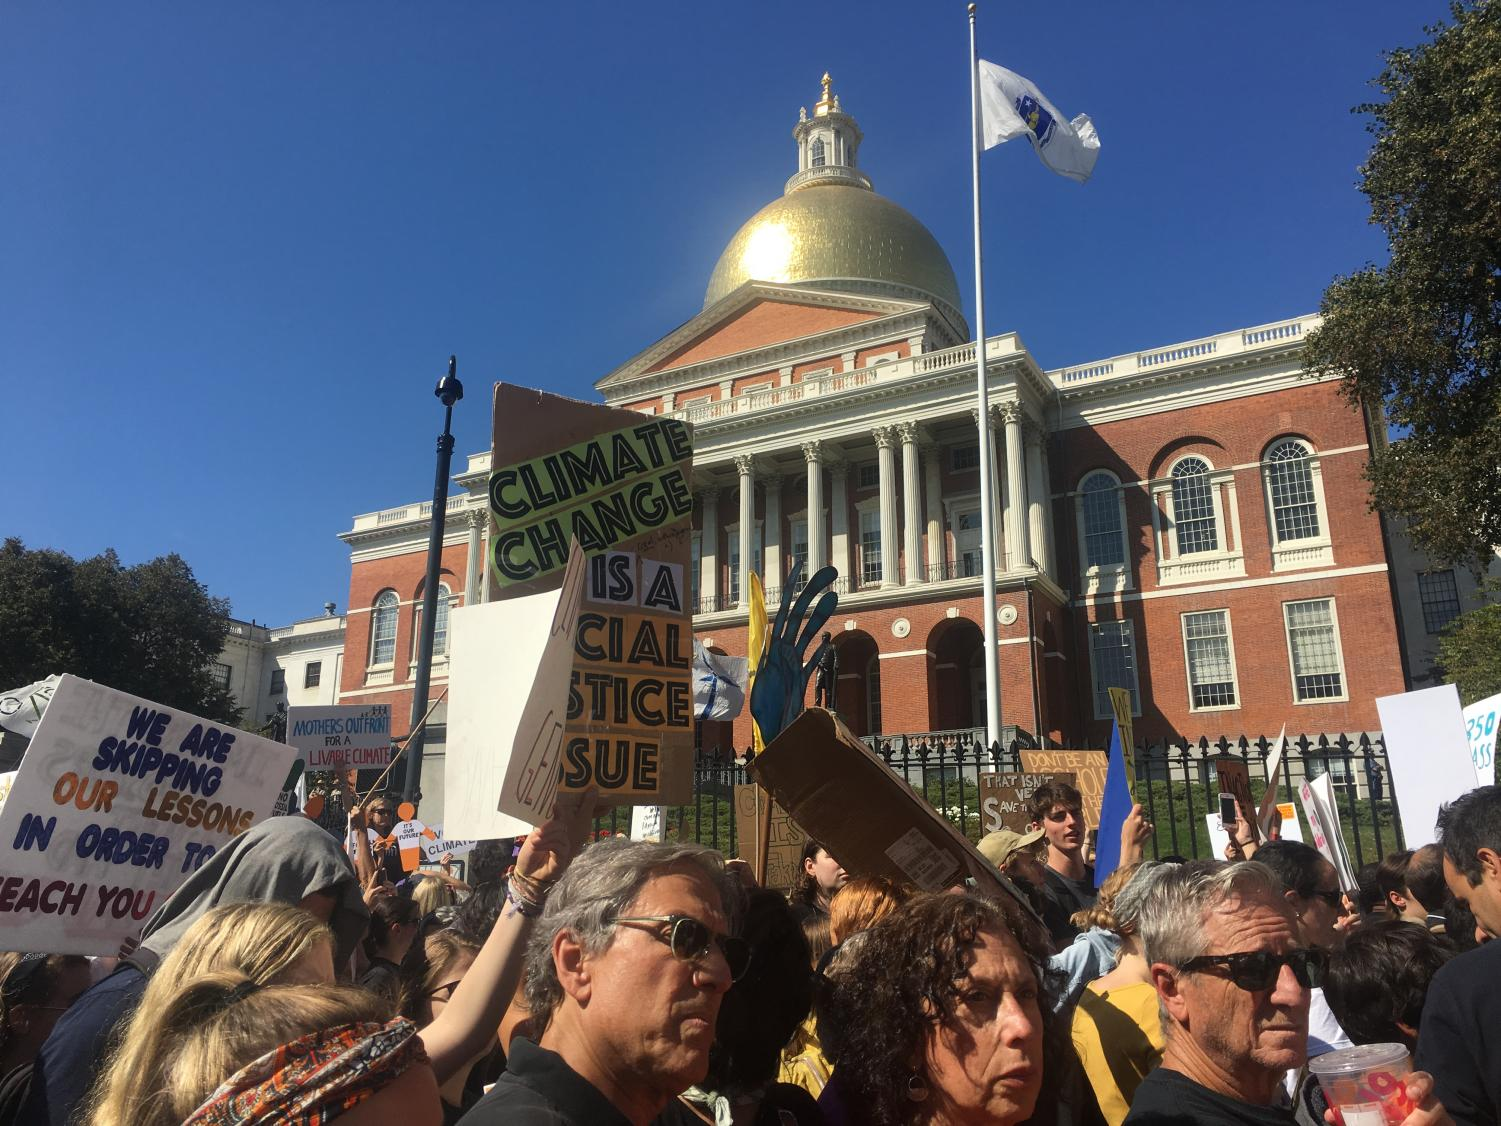 Protestors pass the Massachusetts State House.